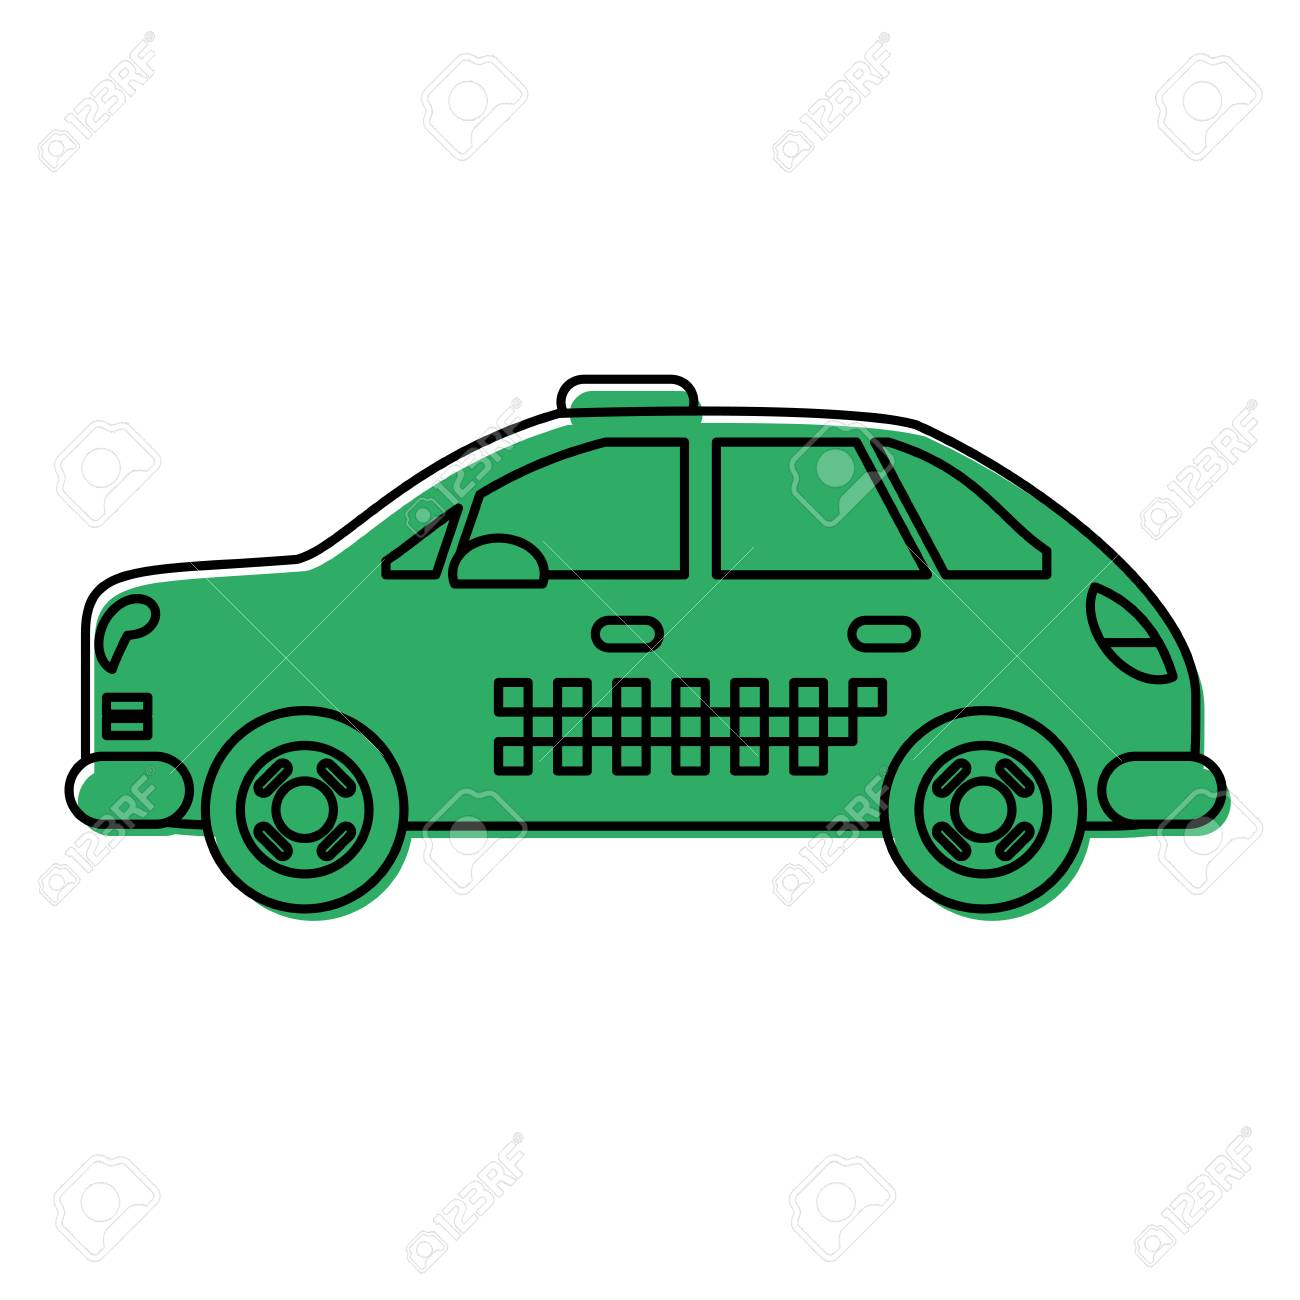 taxi or cab icon image vector illustration design green color